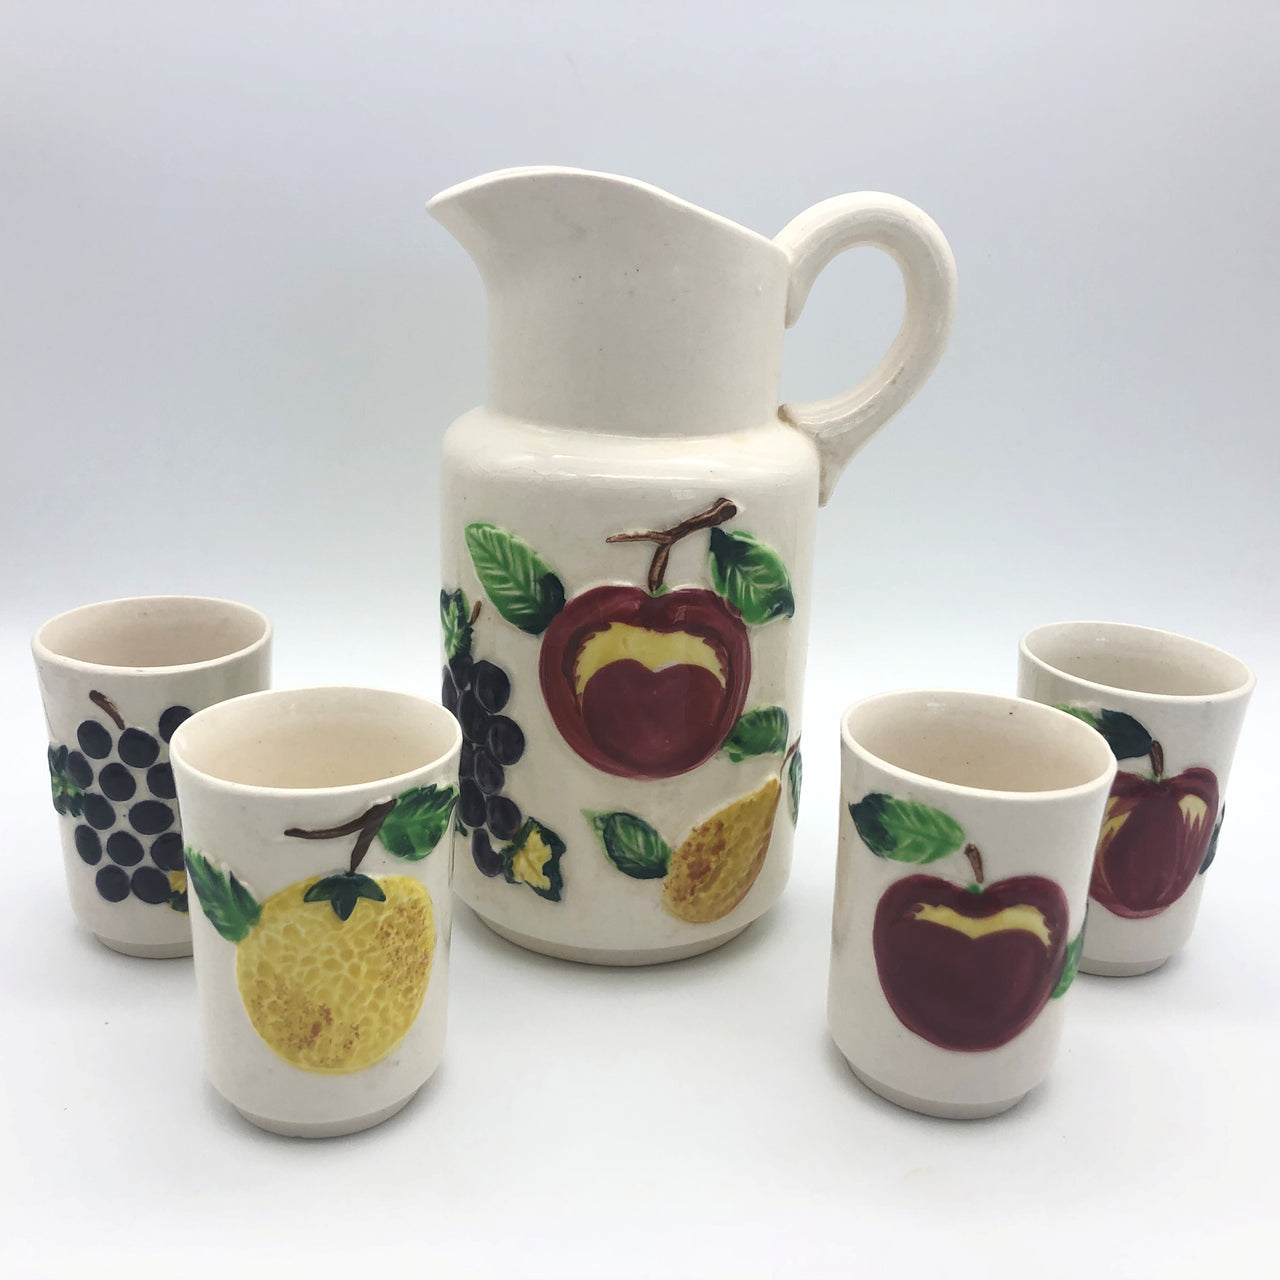 Ceramic Juice Pitcher and 4 Tumbler Glasses Cups Apple Lemon Grapes